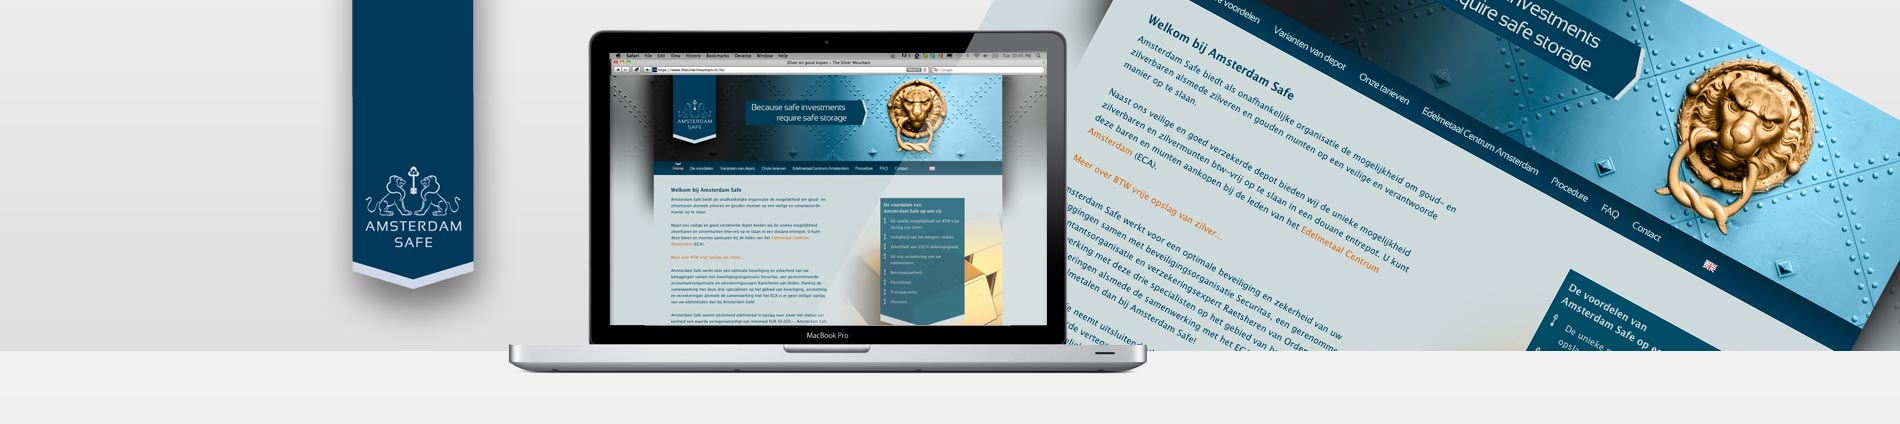 Portfolio - Amsterdam Safe - website - Header